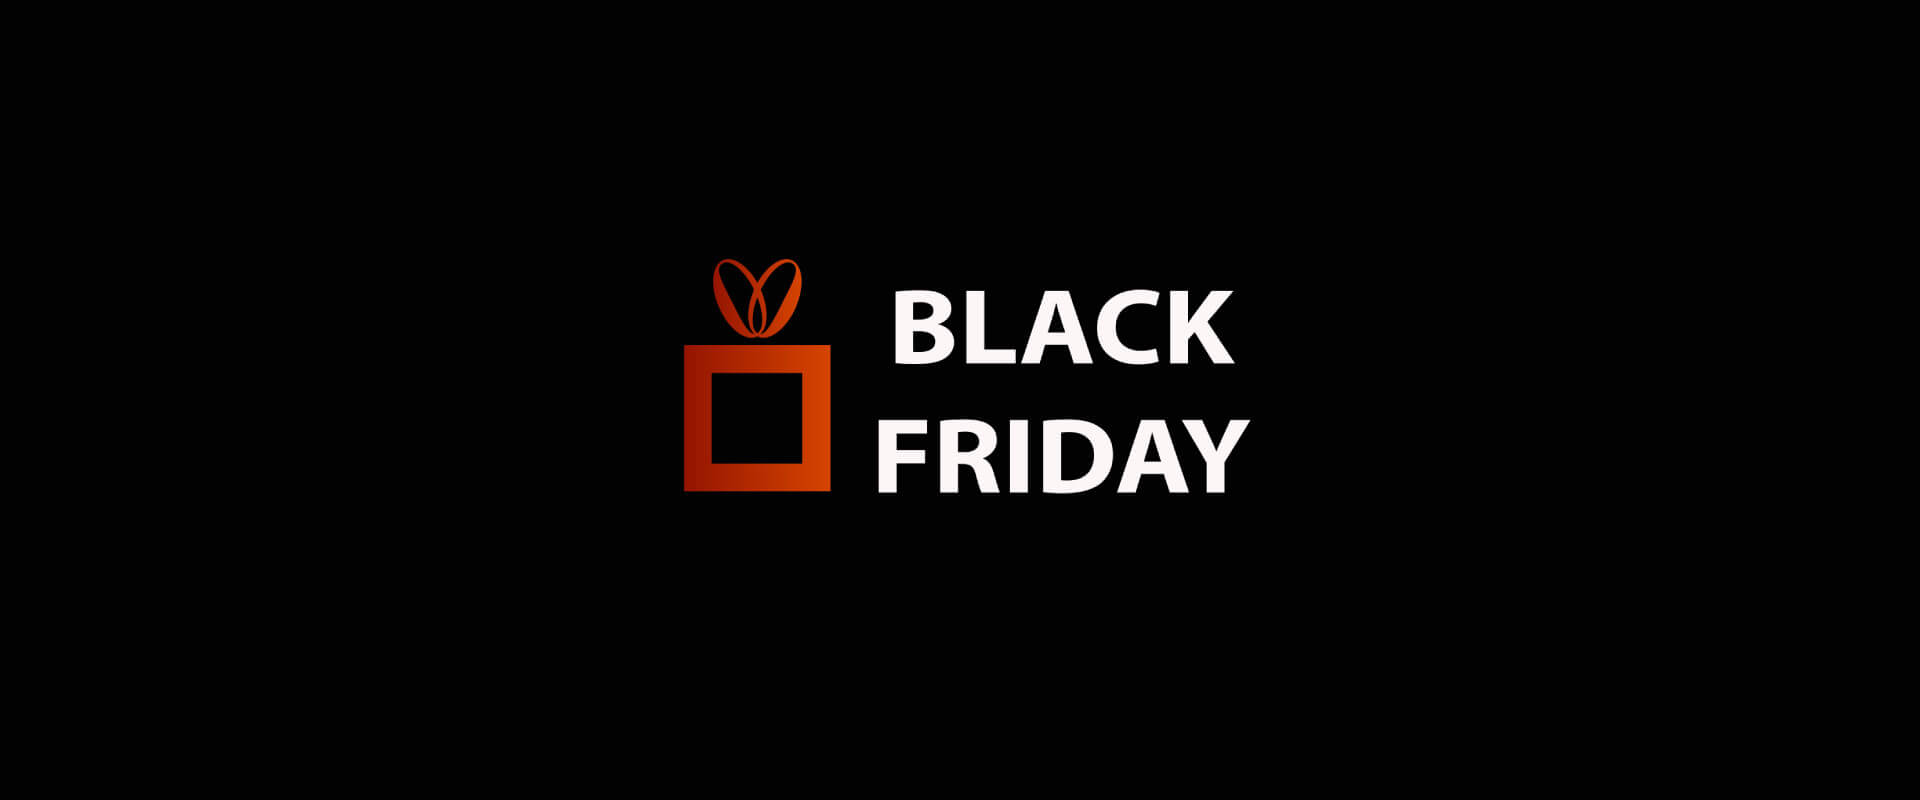 """BLACK FRIDAY"" akcija!"